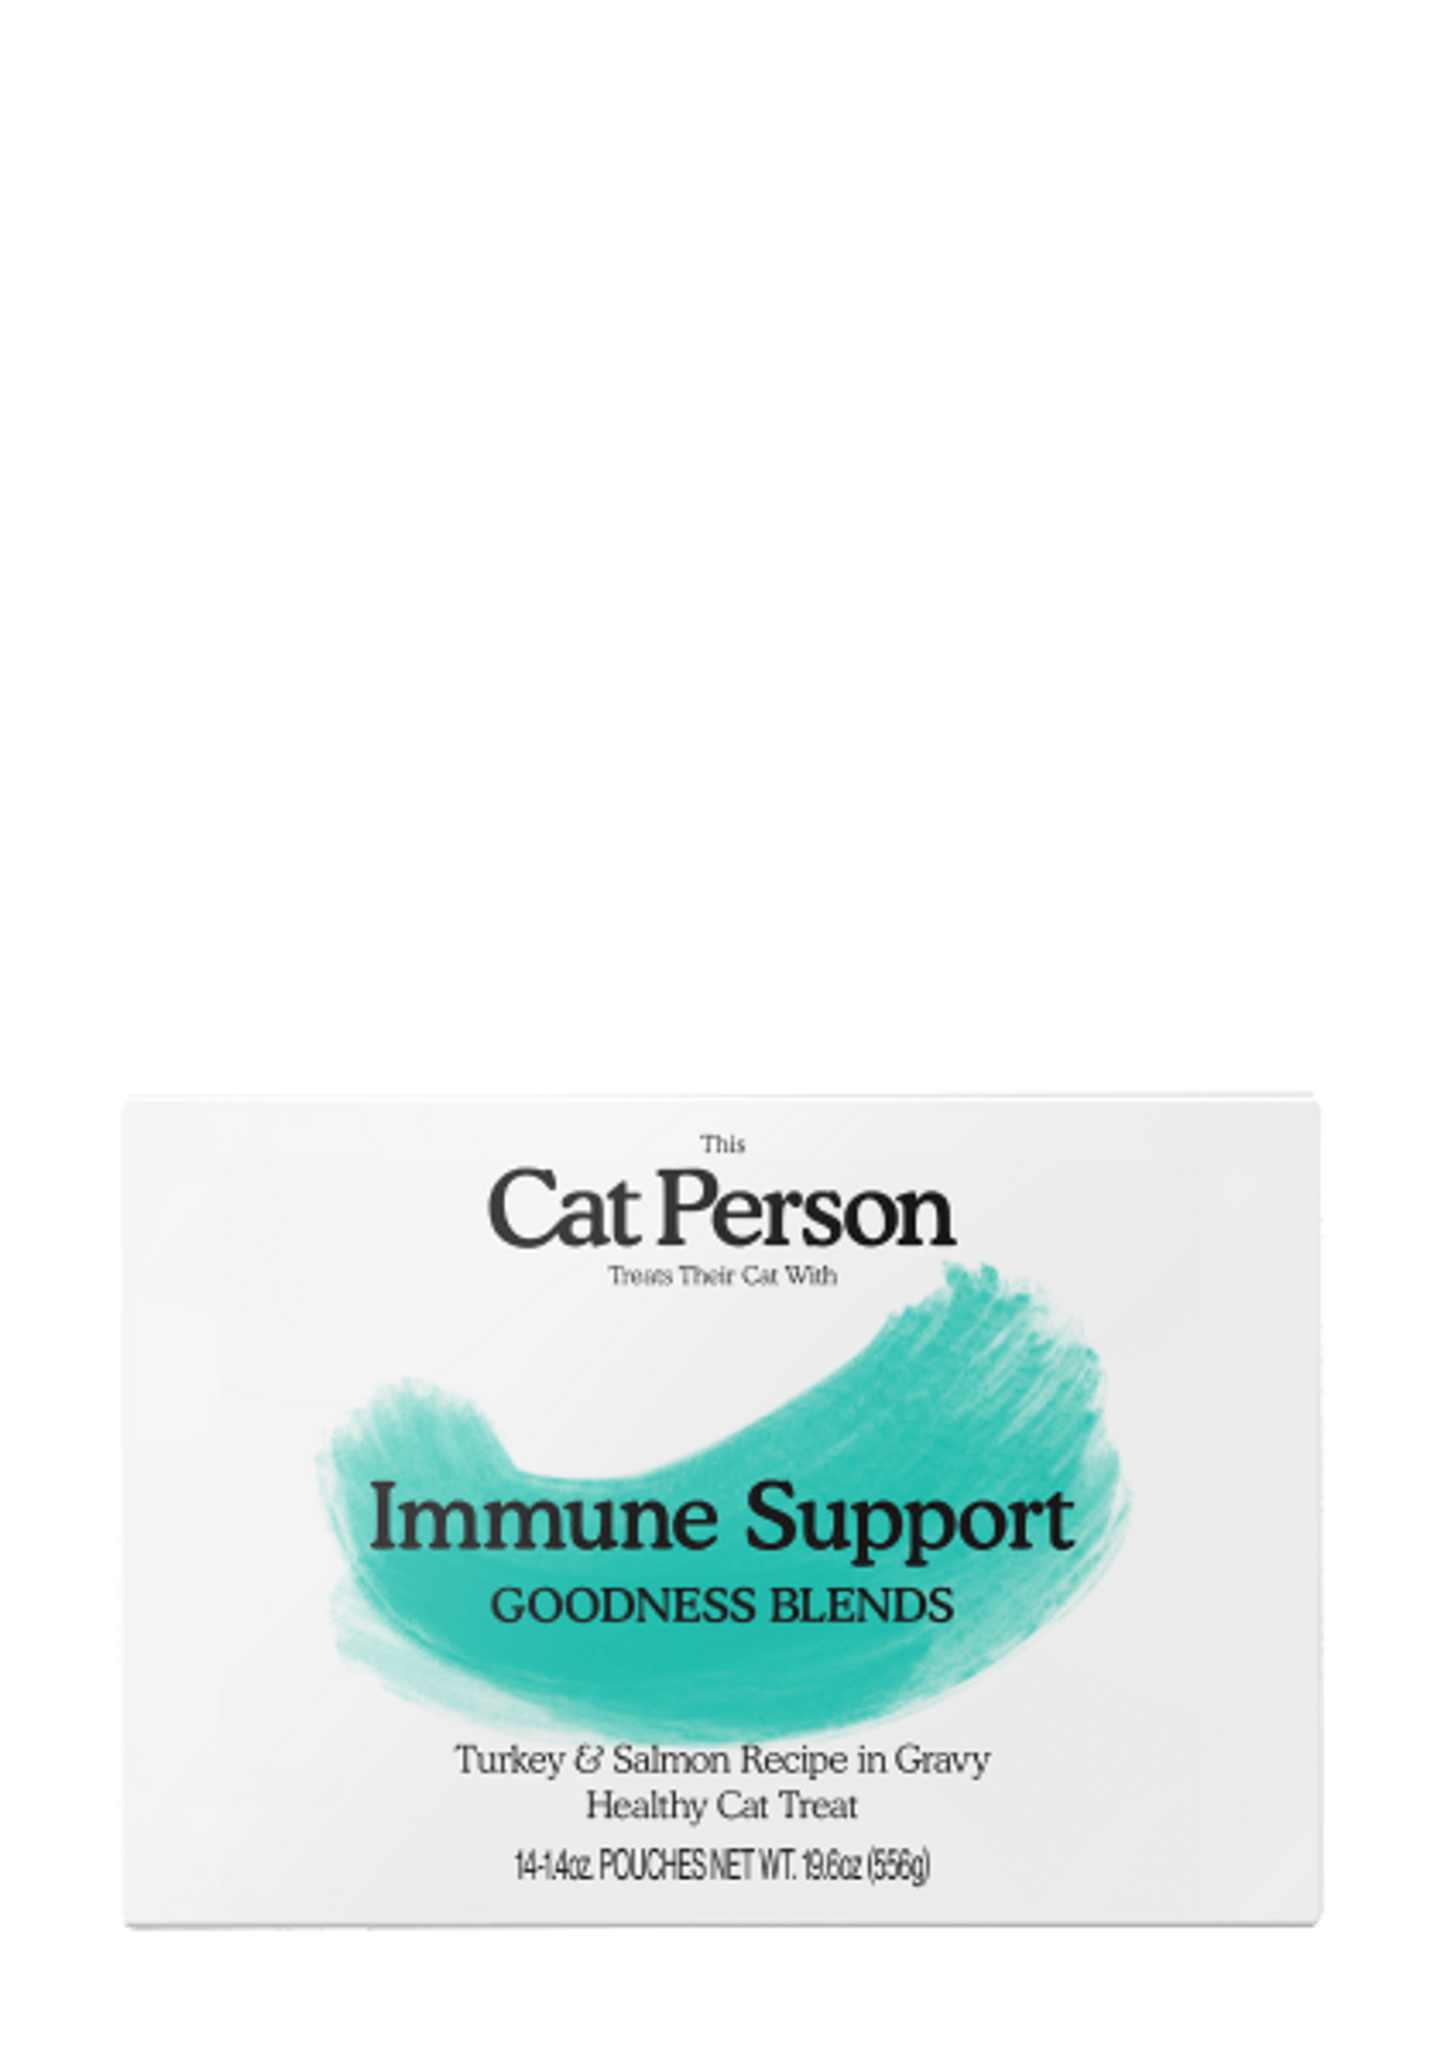 Box of Cat Person Immune Support Goodness Blends healthy cat treat